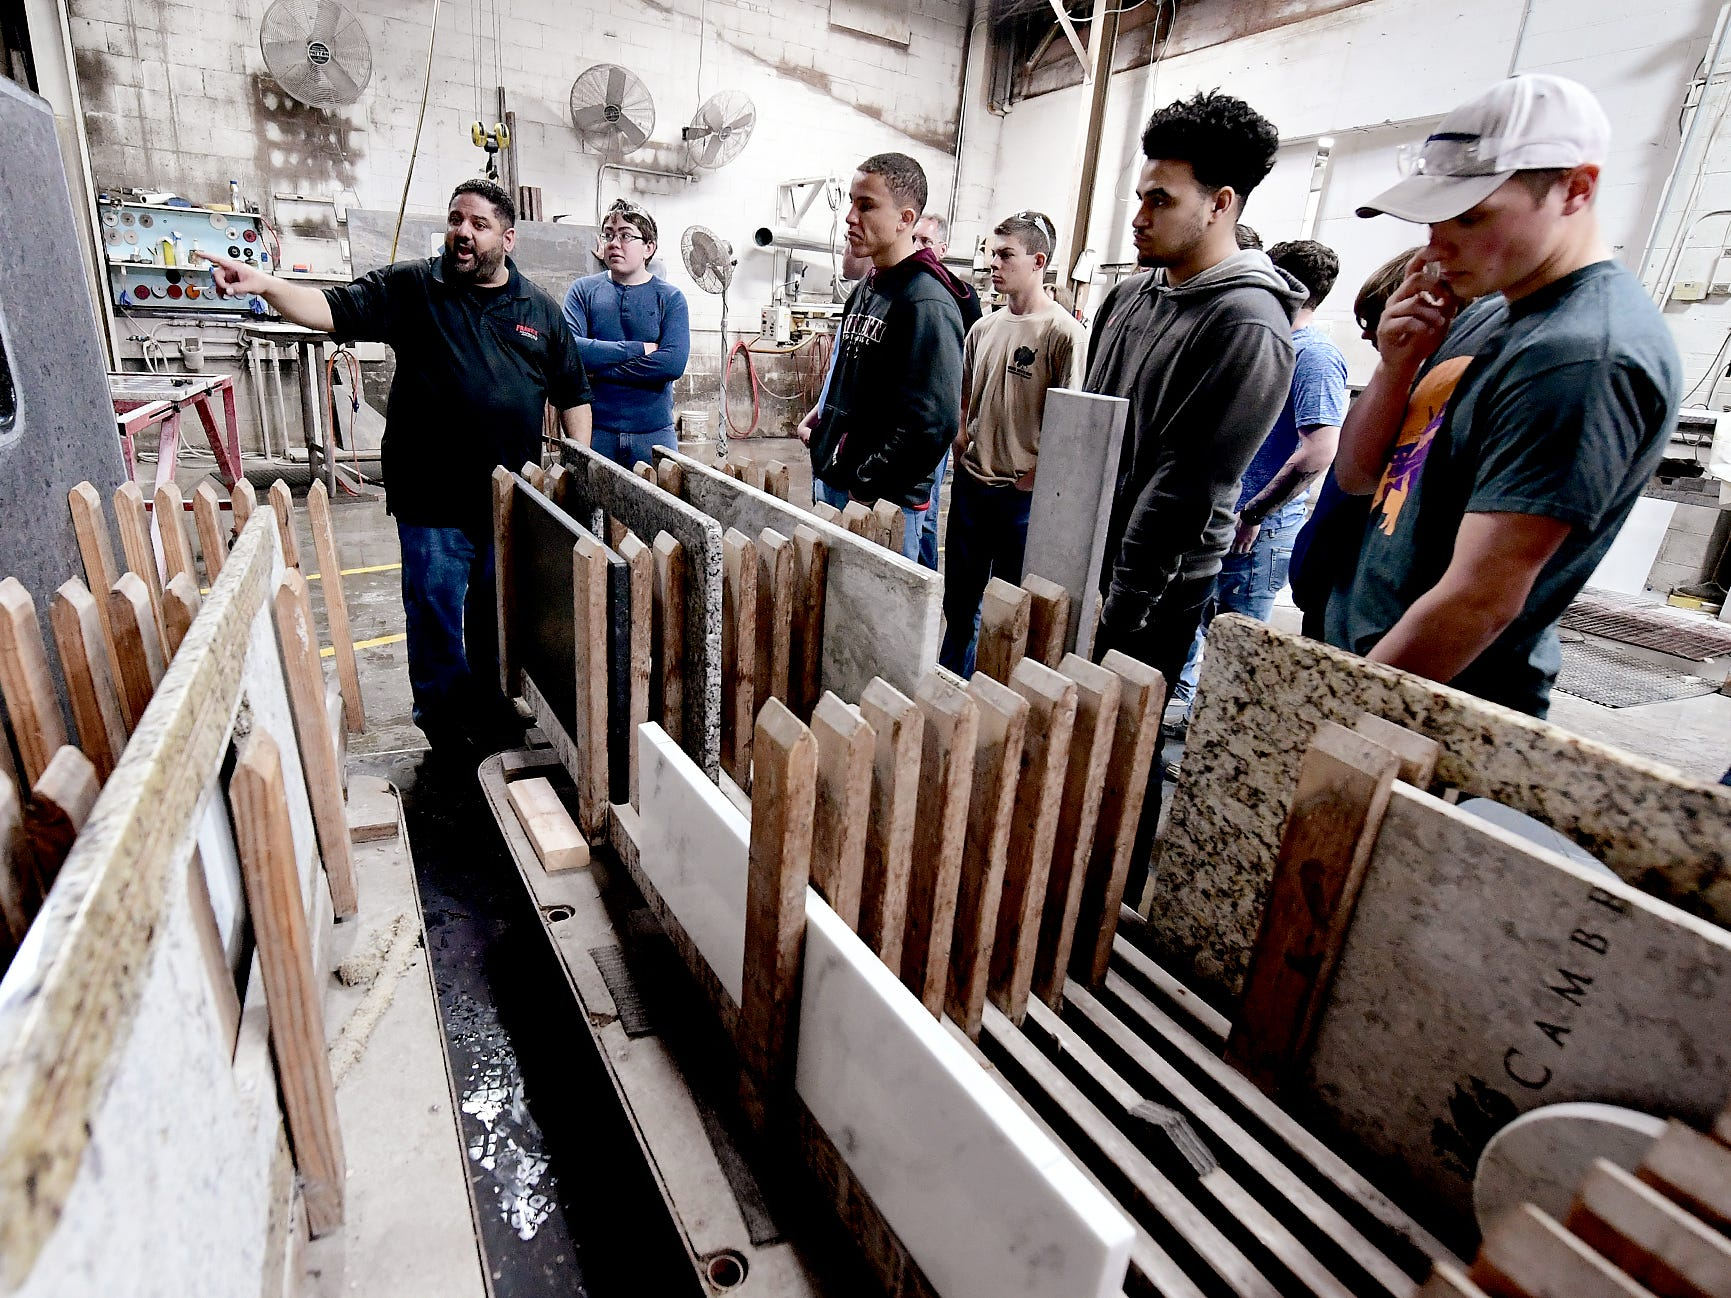 Frank's Marble & Granite owner Carmine Pantano, left, shows examples of products to students during a tour of the Red Lion business during the York Builders Association 2nd Annual Construction Career Day Monday, April 8, 2019. The goal of the program is to raise student-awareness about local career opportunities in the construction field. Association members host the students. The association has planned similar events at various companies through April 17. Nine area high schools are participating in the program, according to the builders association. Bill Kalina photo